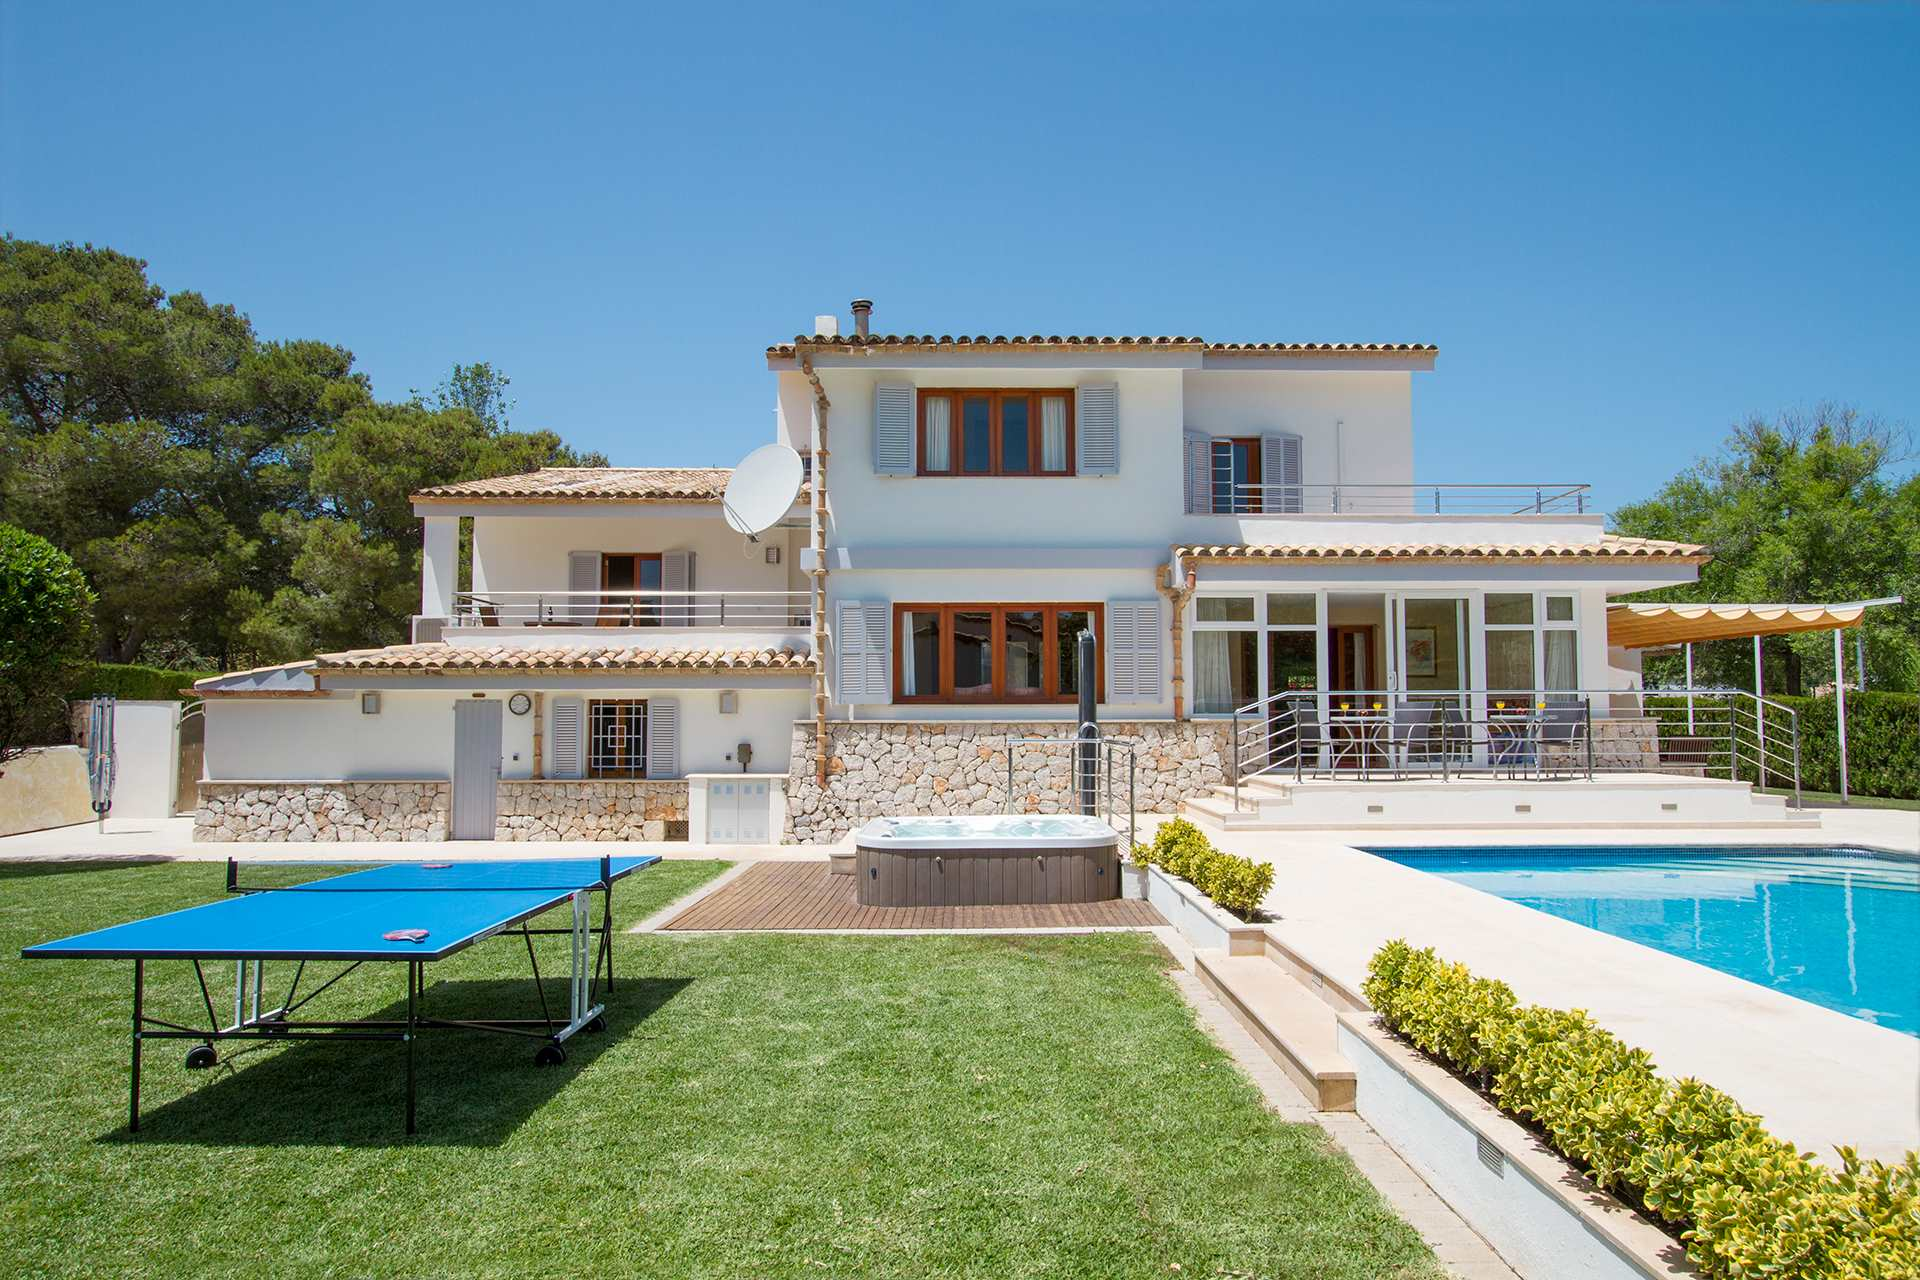 Villa Ca'n Barbas, 4 bedroom villa in Pollensa & Puerto Pollensa , Majorca Photo #11